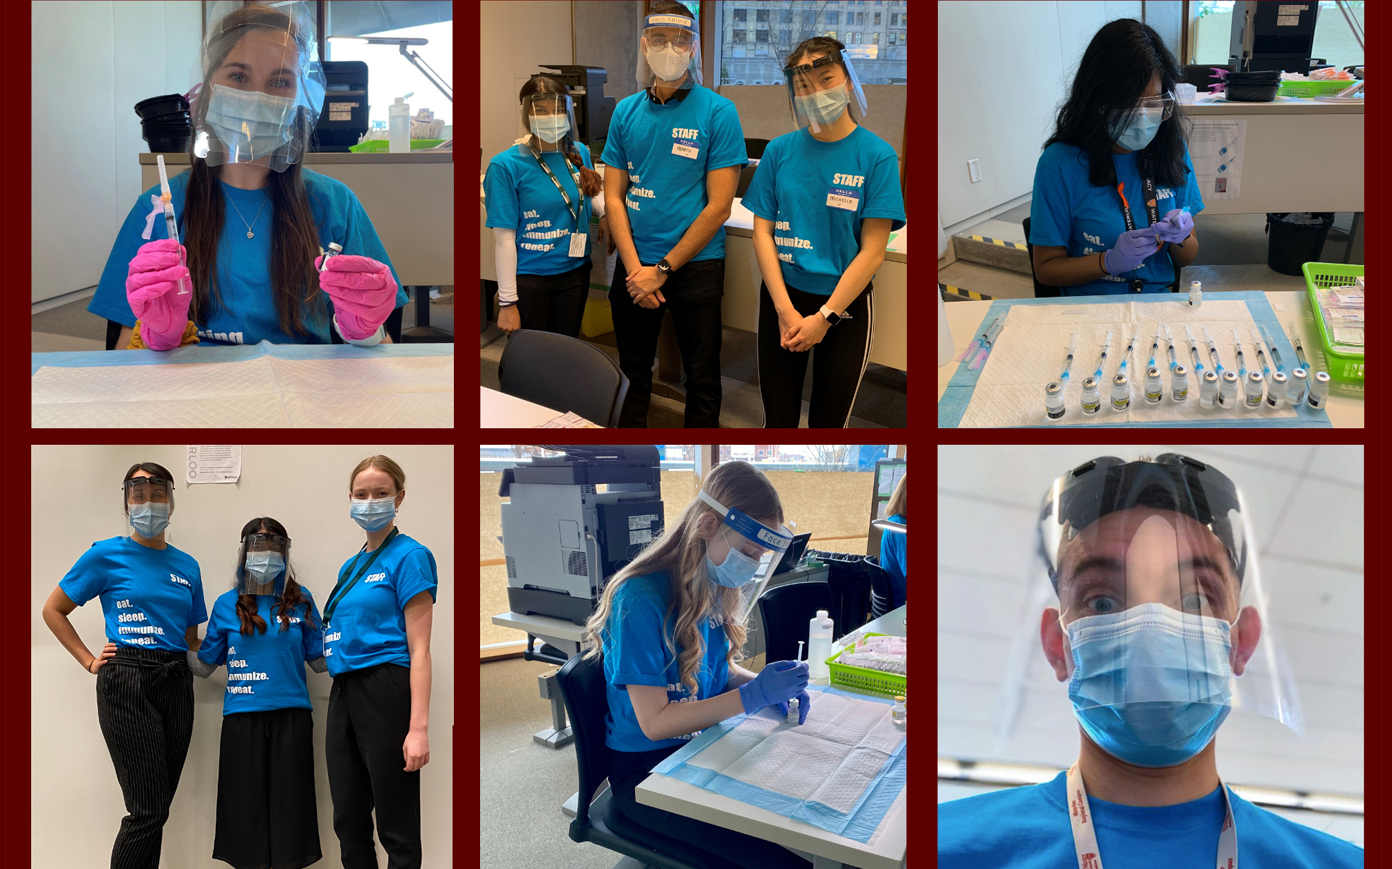 Students in different roles wearing PPE while workign at clinic